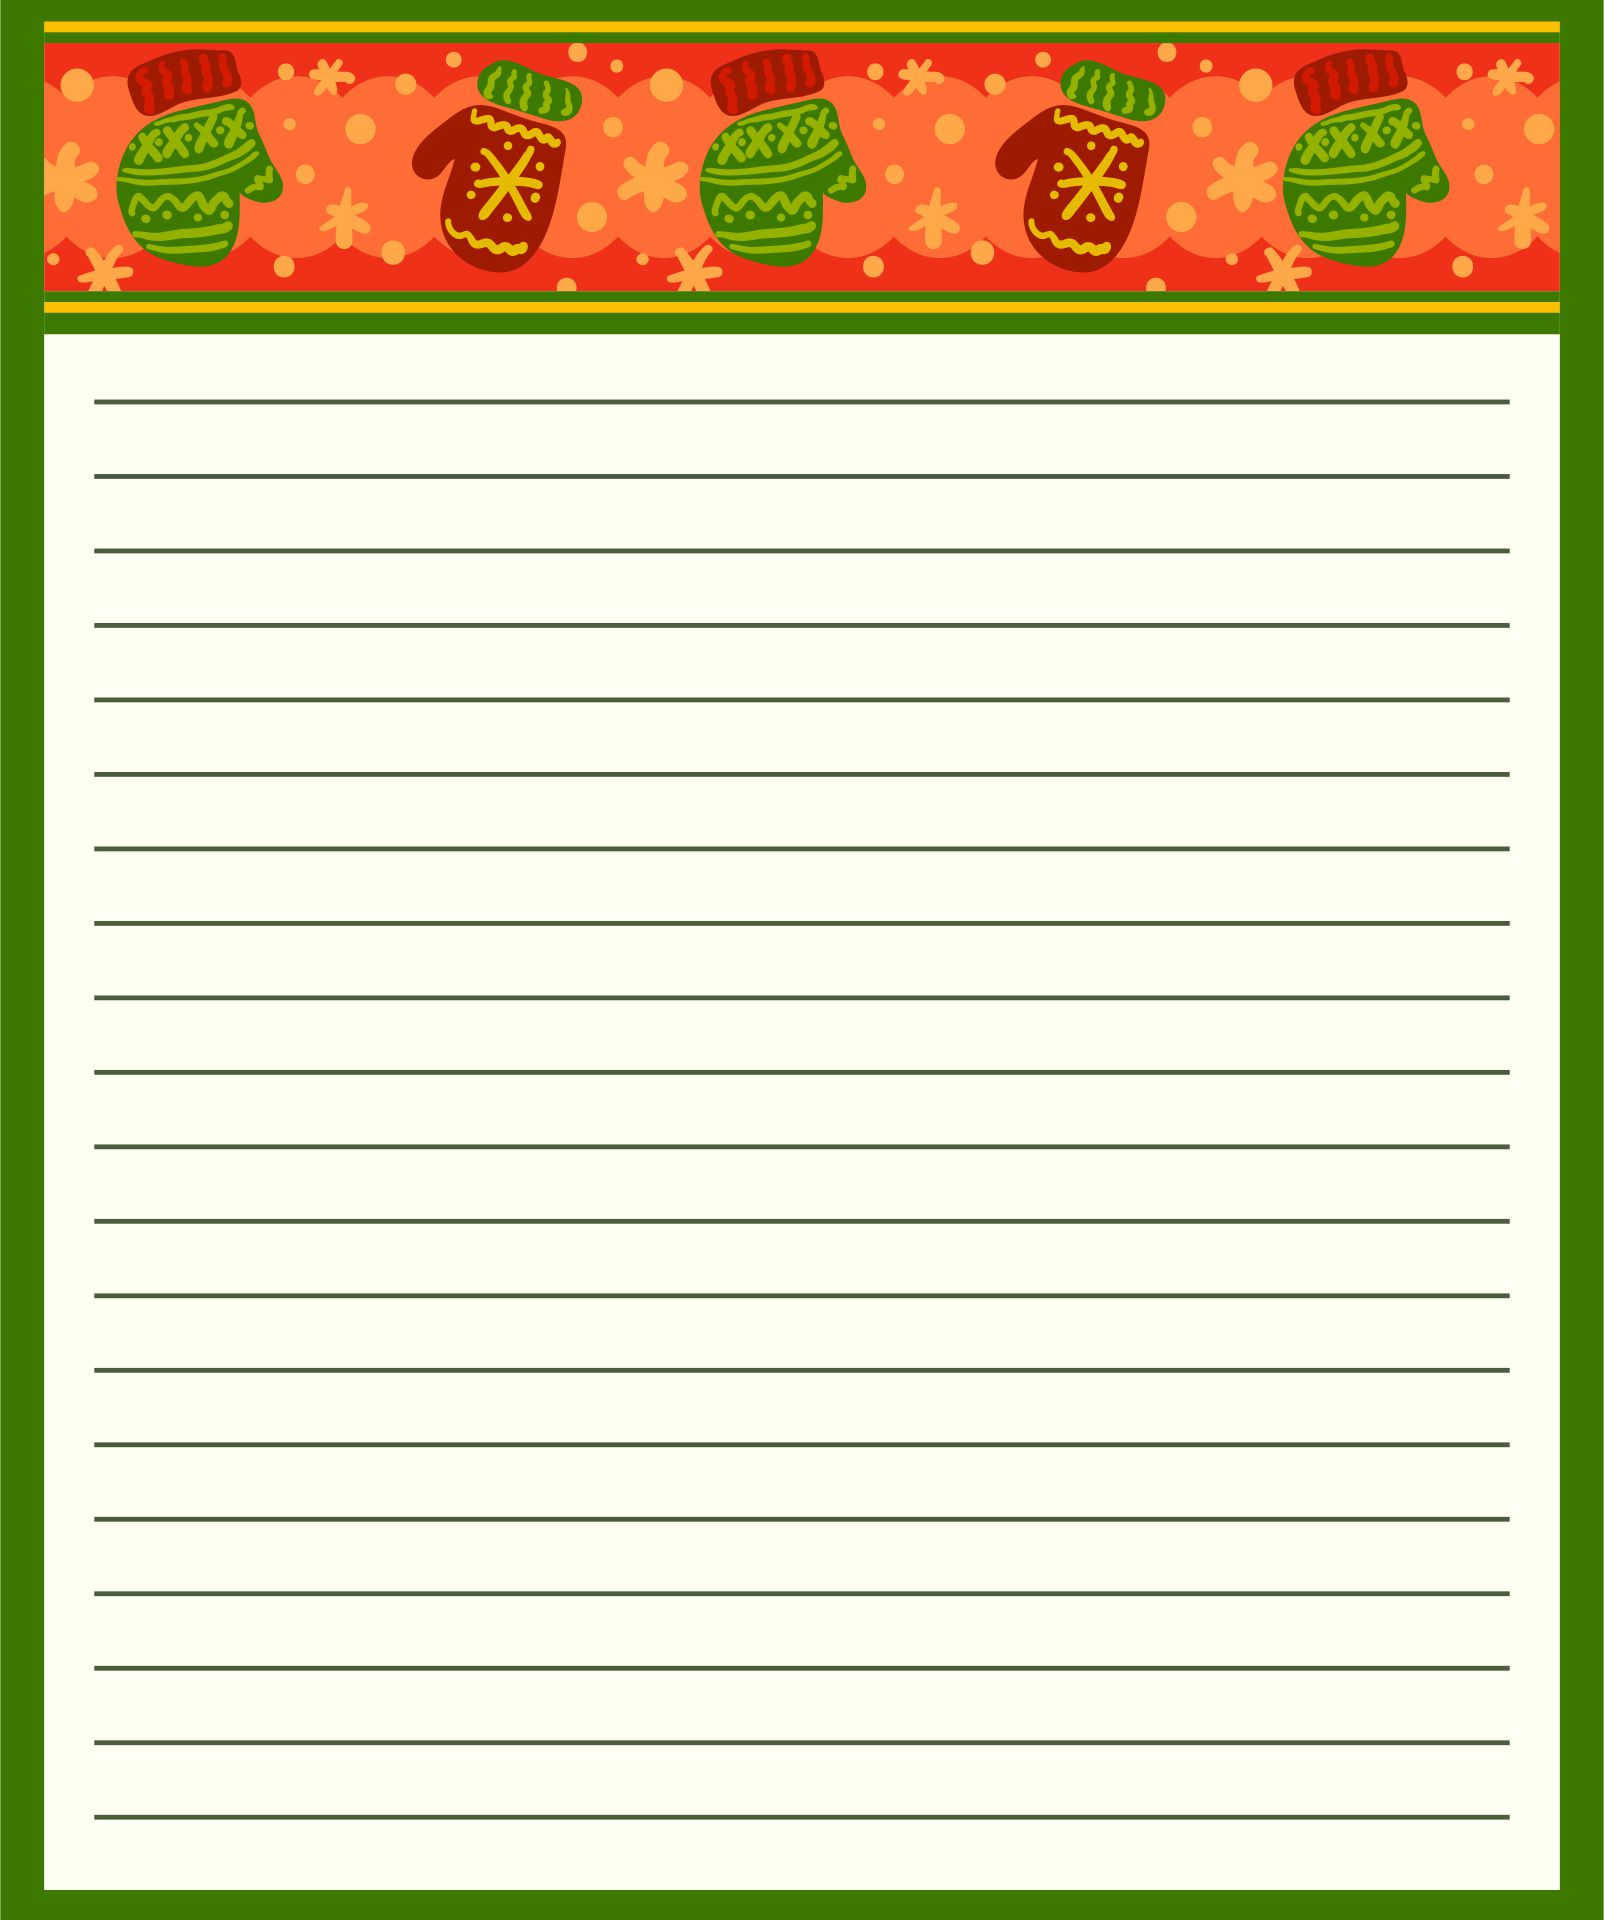 image about Free Printable Christmas Borders called Xmas Composing Paper With Border Amusement and activity